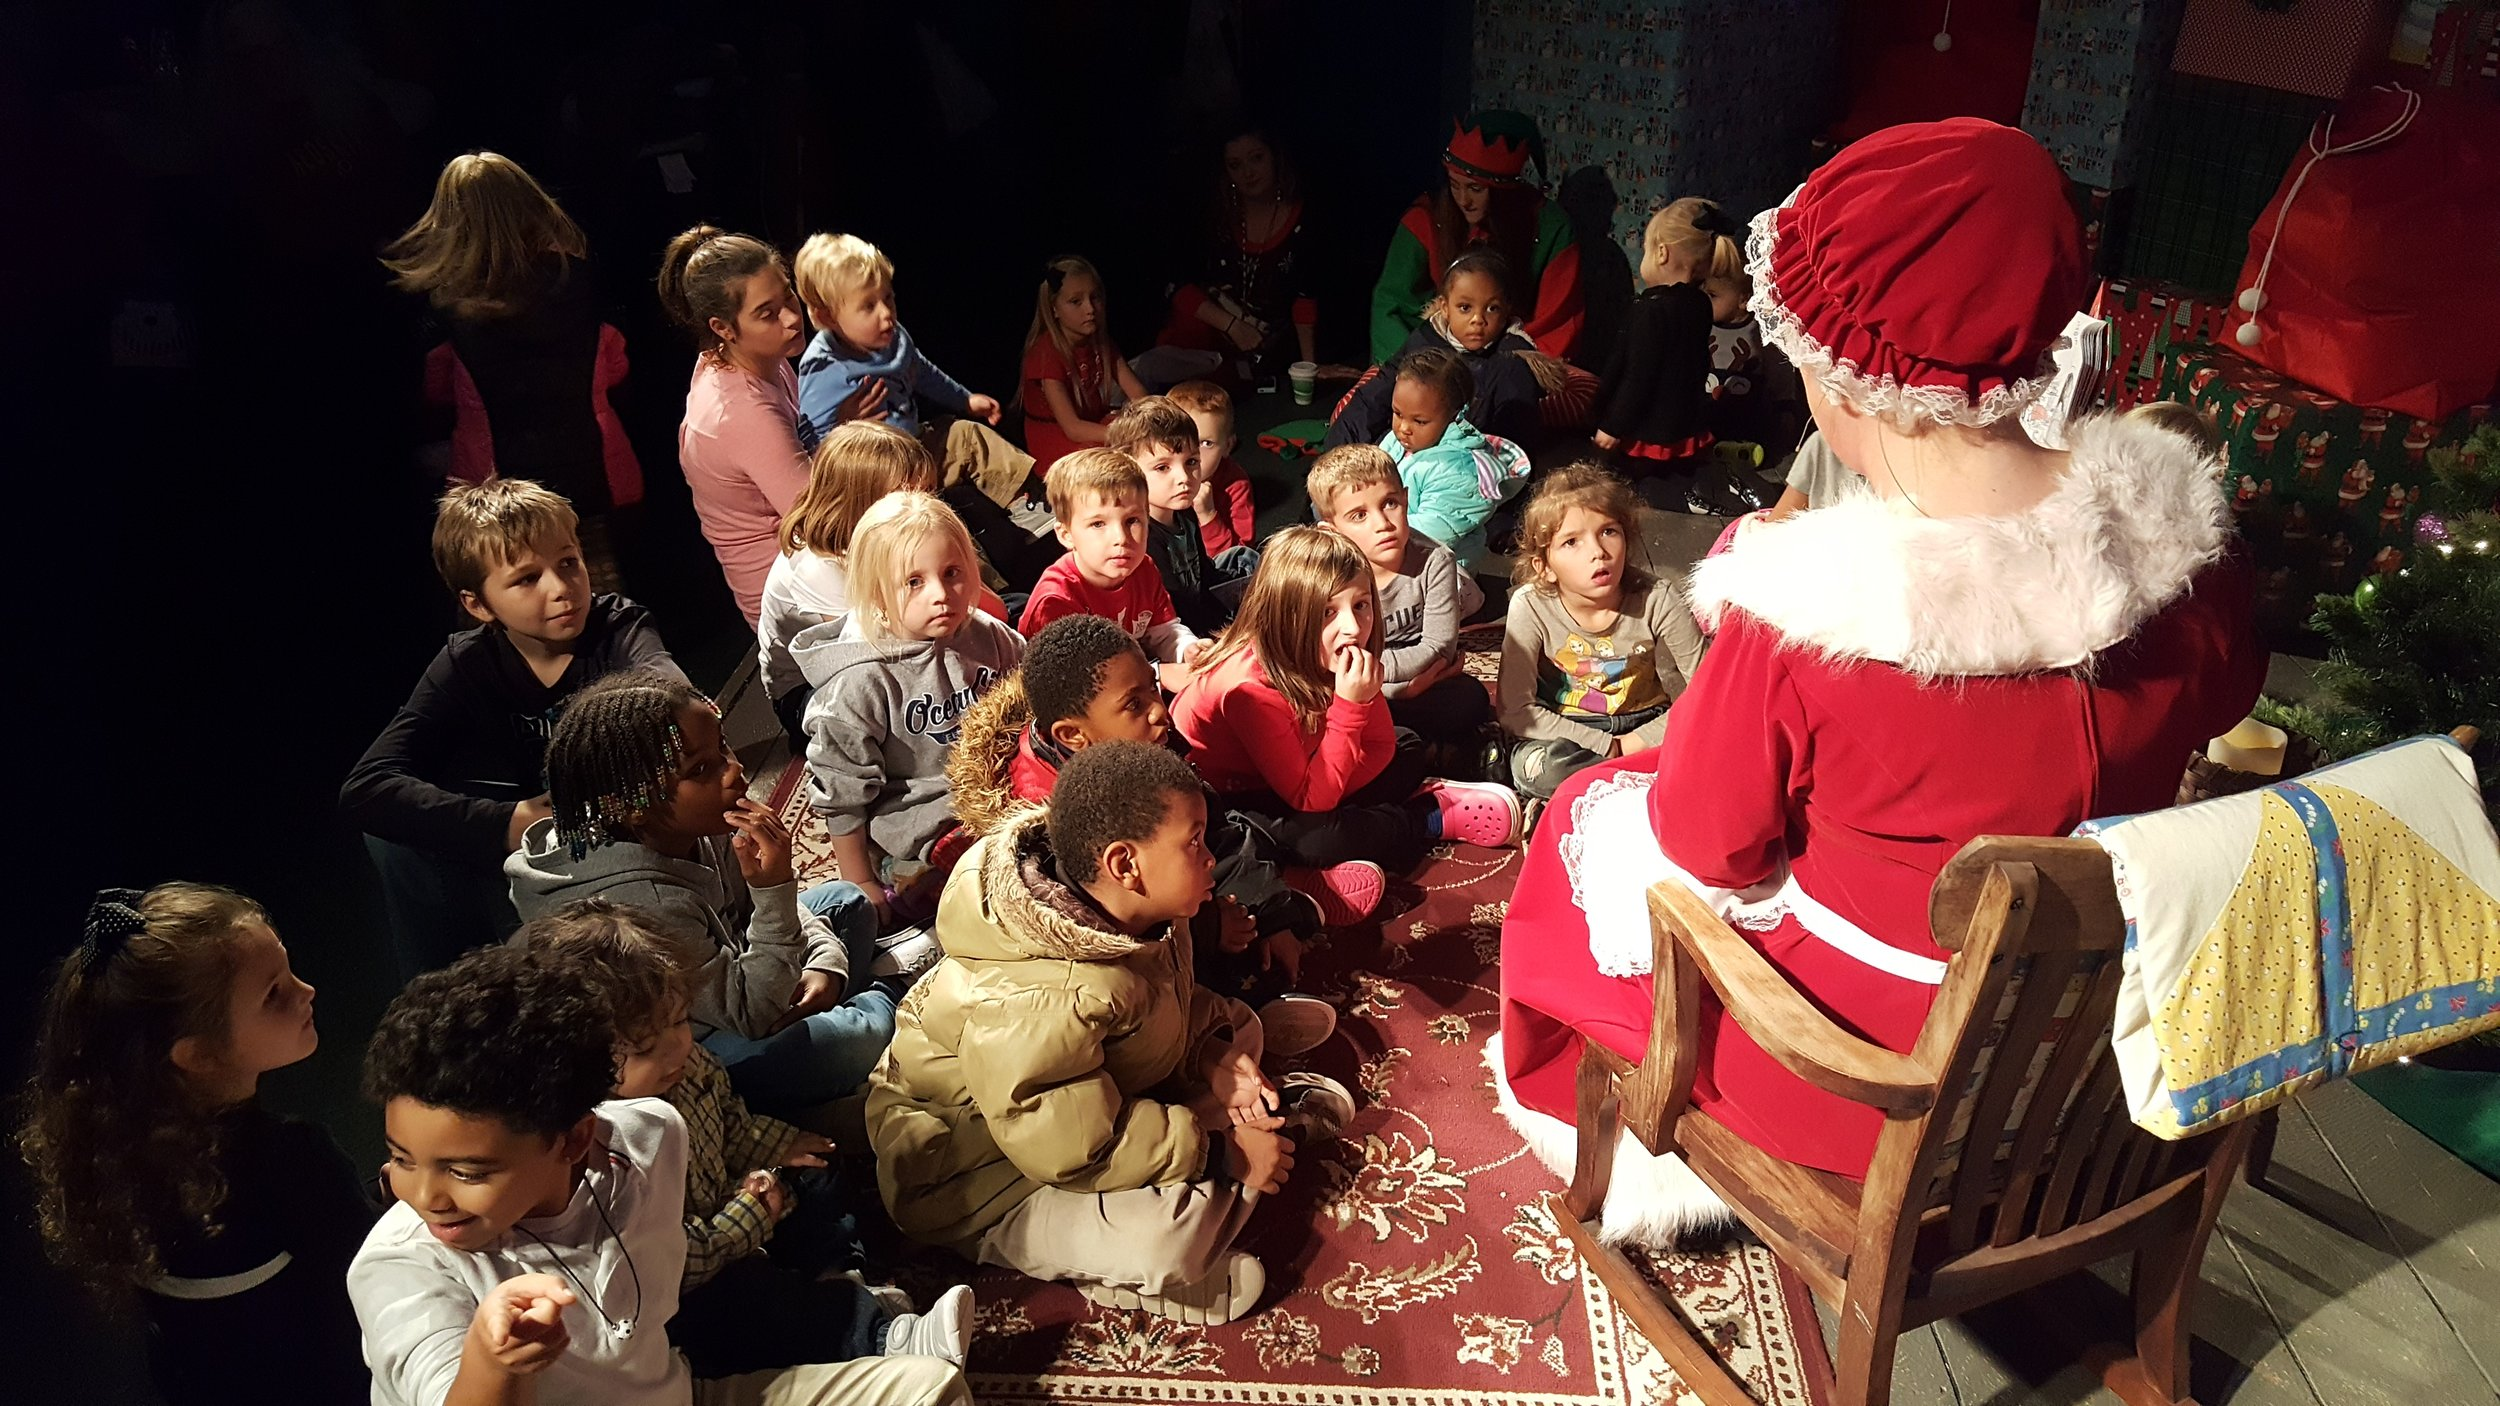 The best Christmas stories are the ones read by Mrs. Claus!